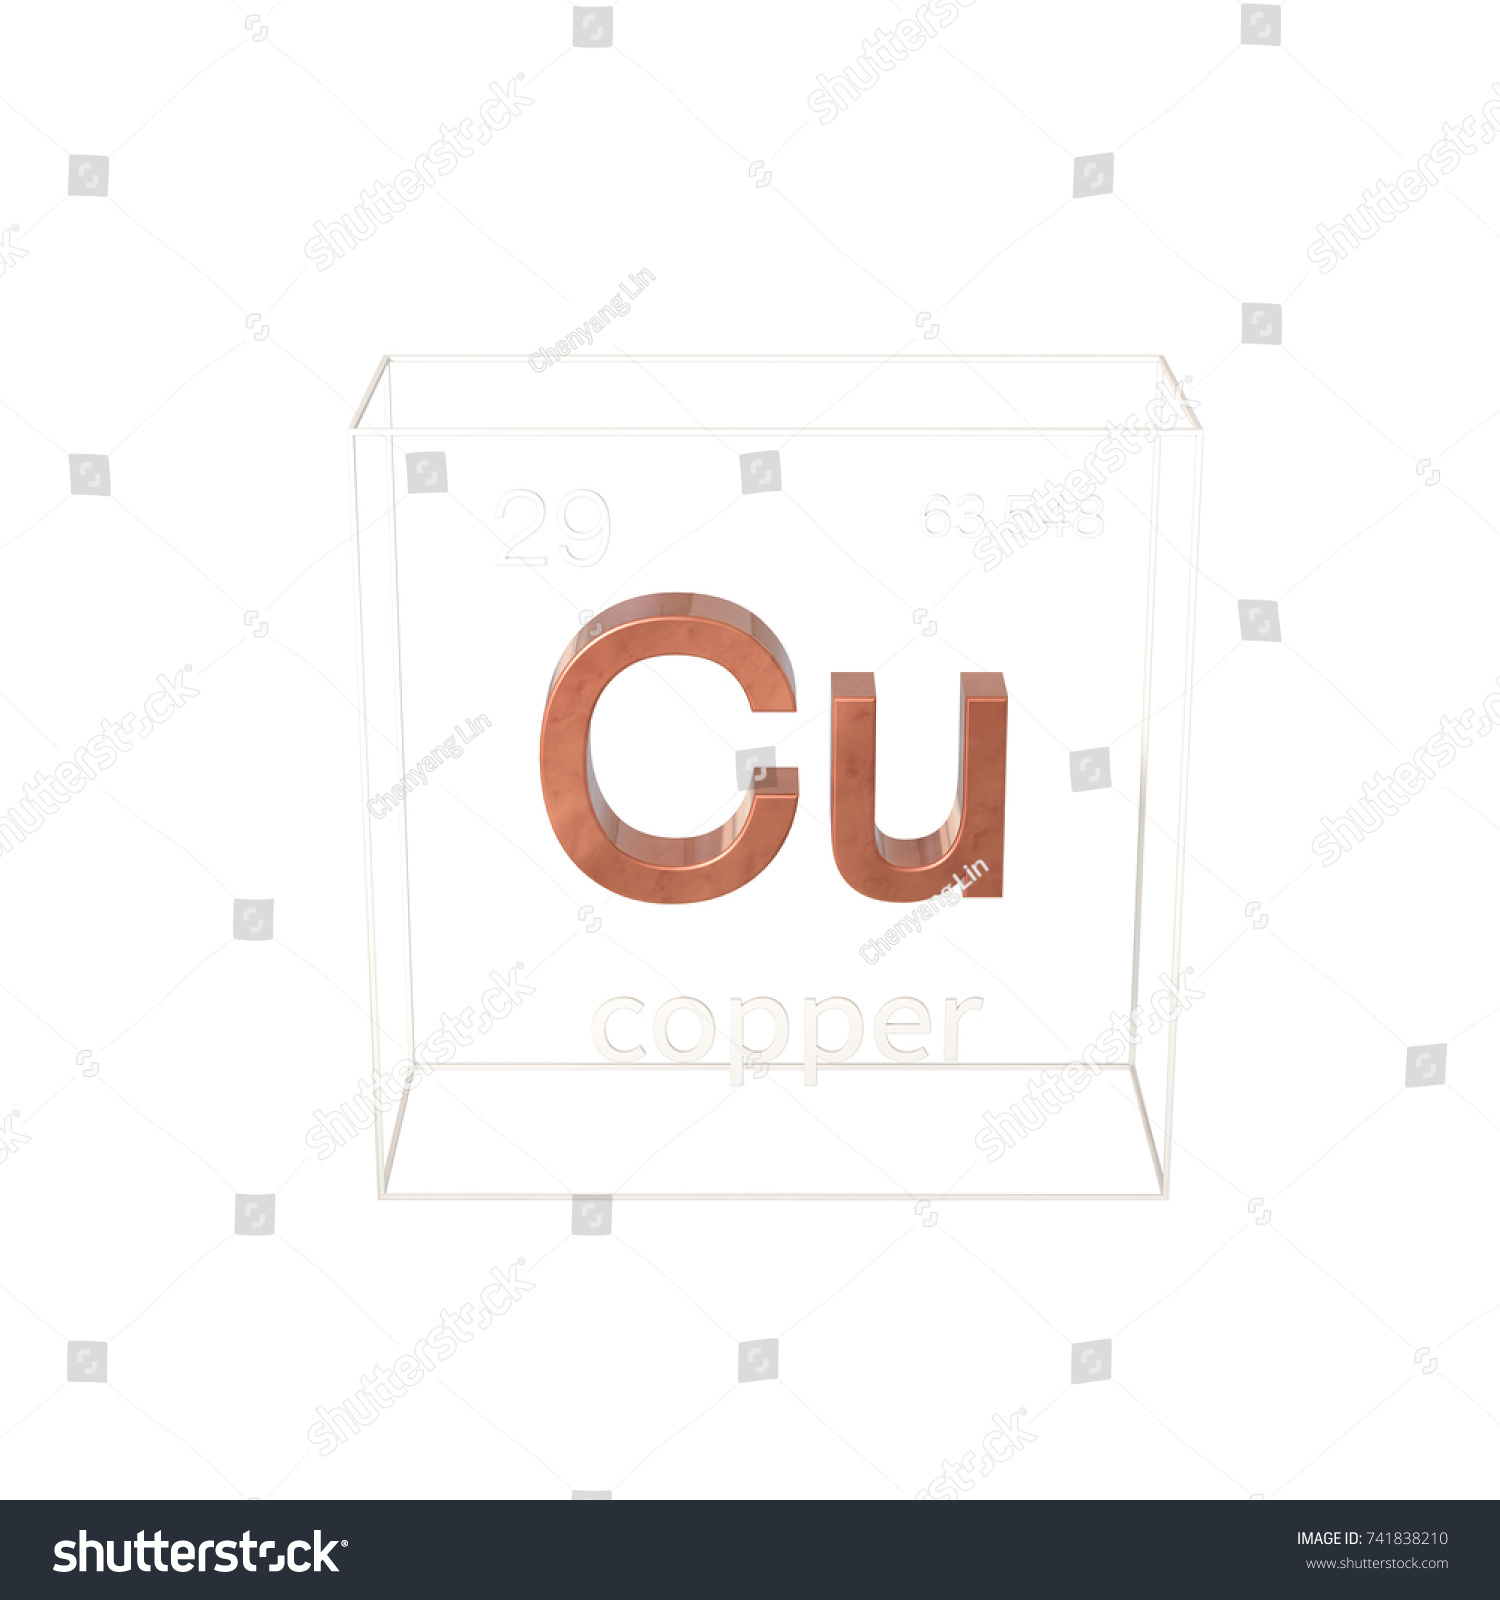 Periodic table of copper image collections periodic table images copper chemical element atomic number atomic stock illustration copper chemical element atomic number and atomic weight gamestrikefo Gallery